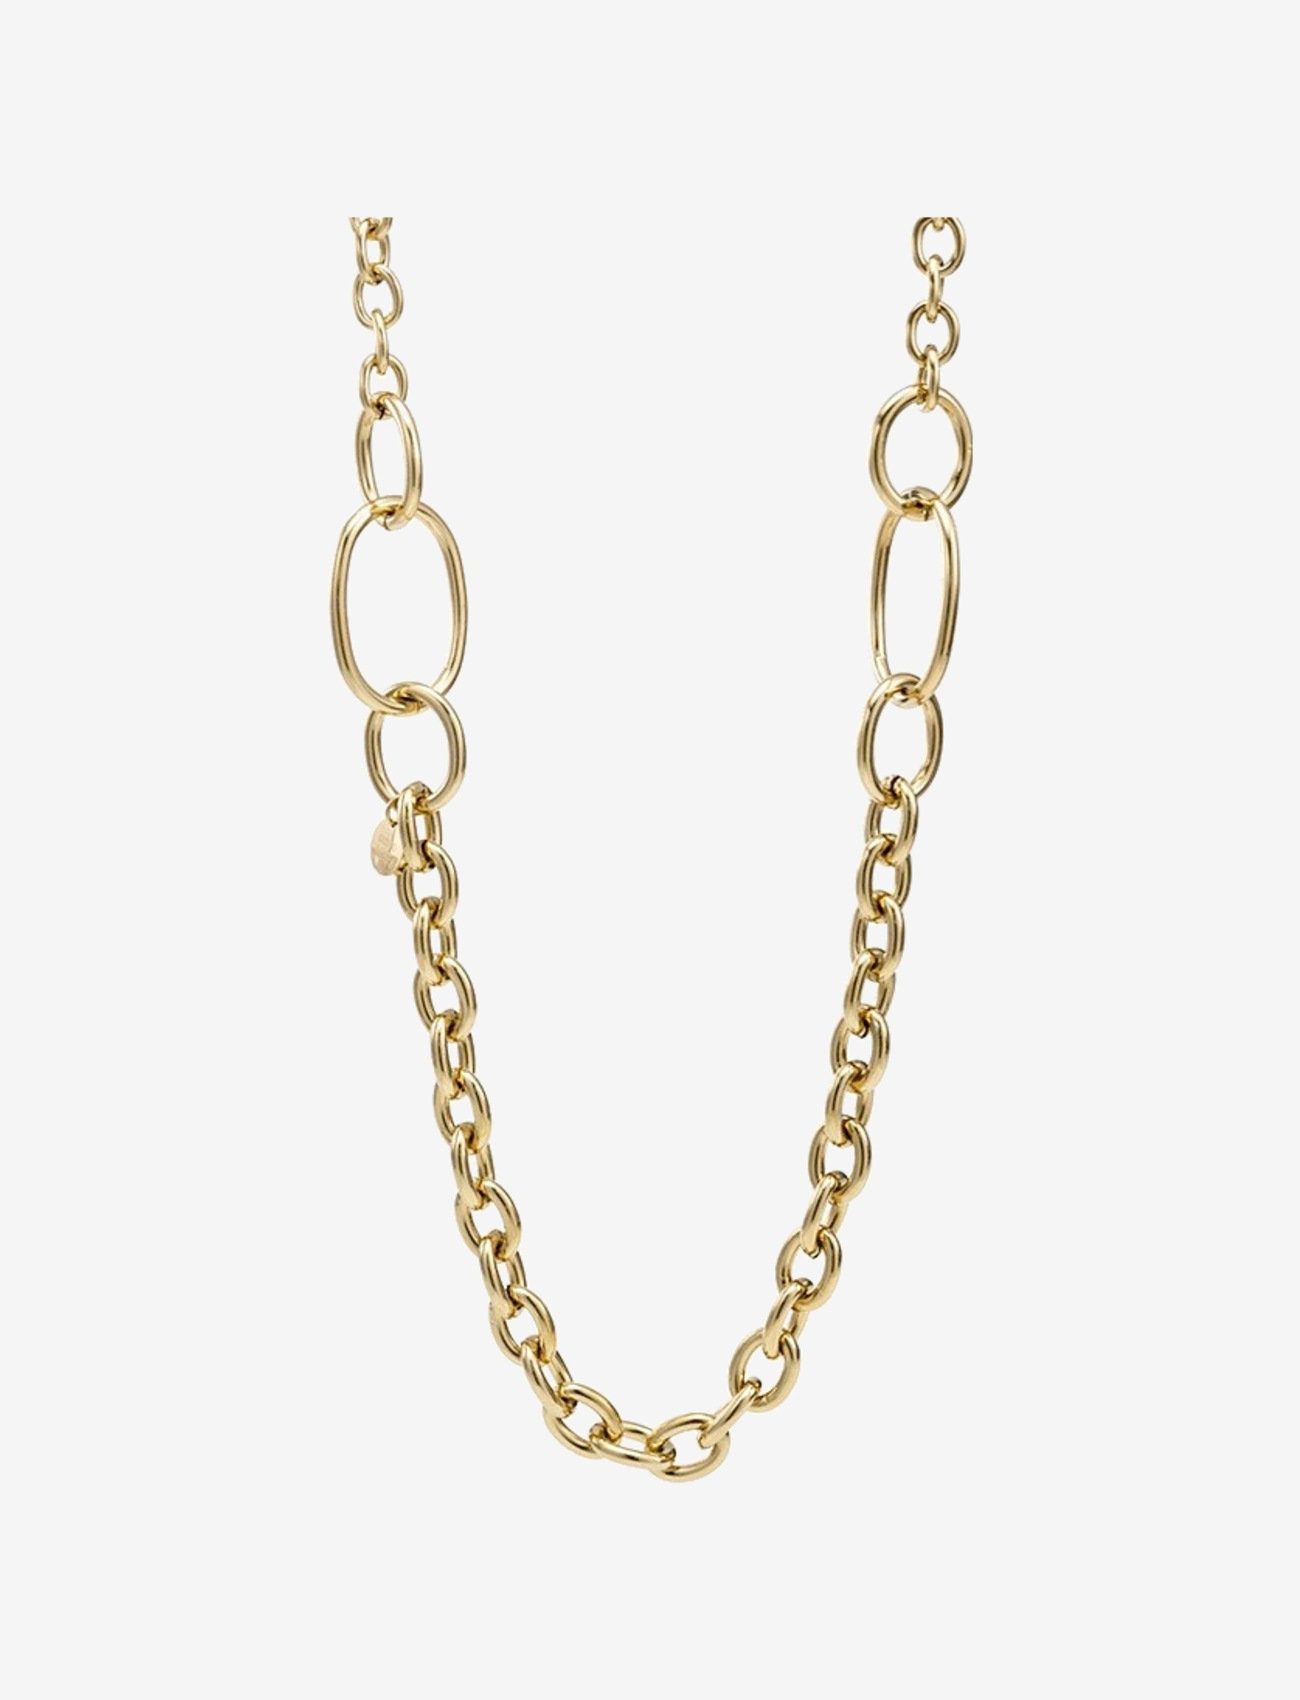 Bud to rose - Garbo Long Necklace Gold - kettingen  - gold - 0